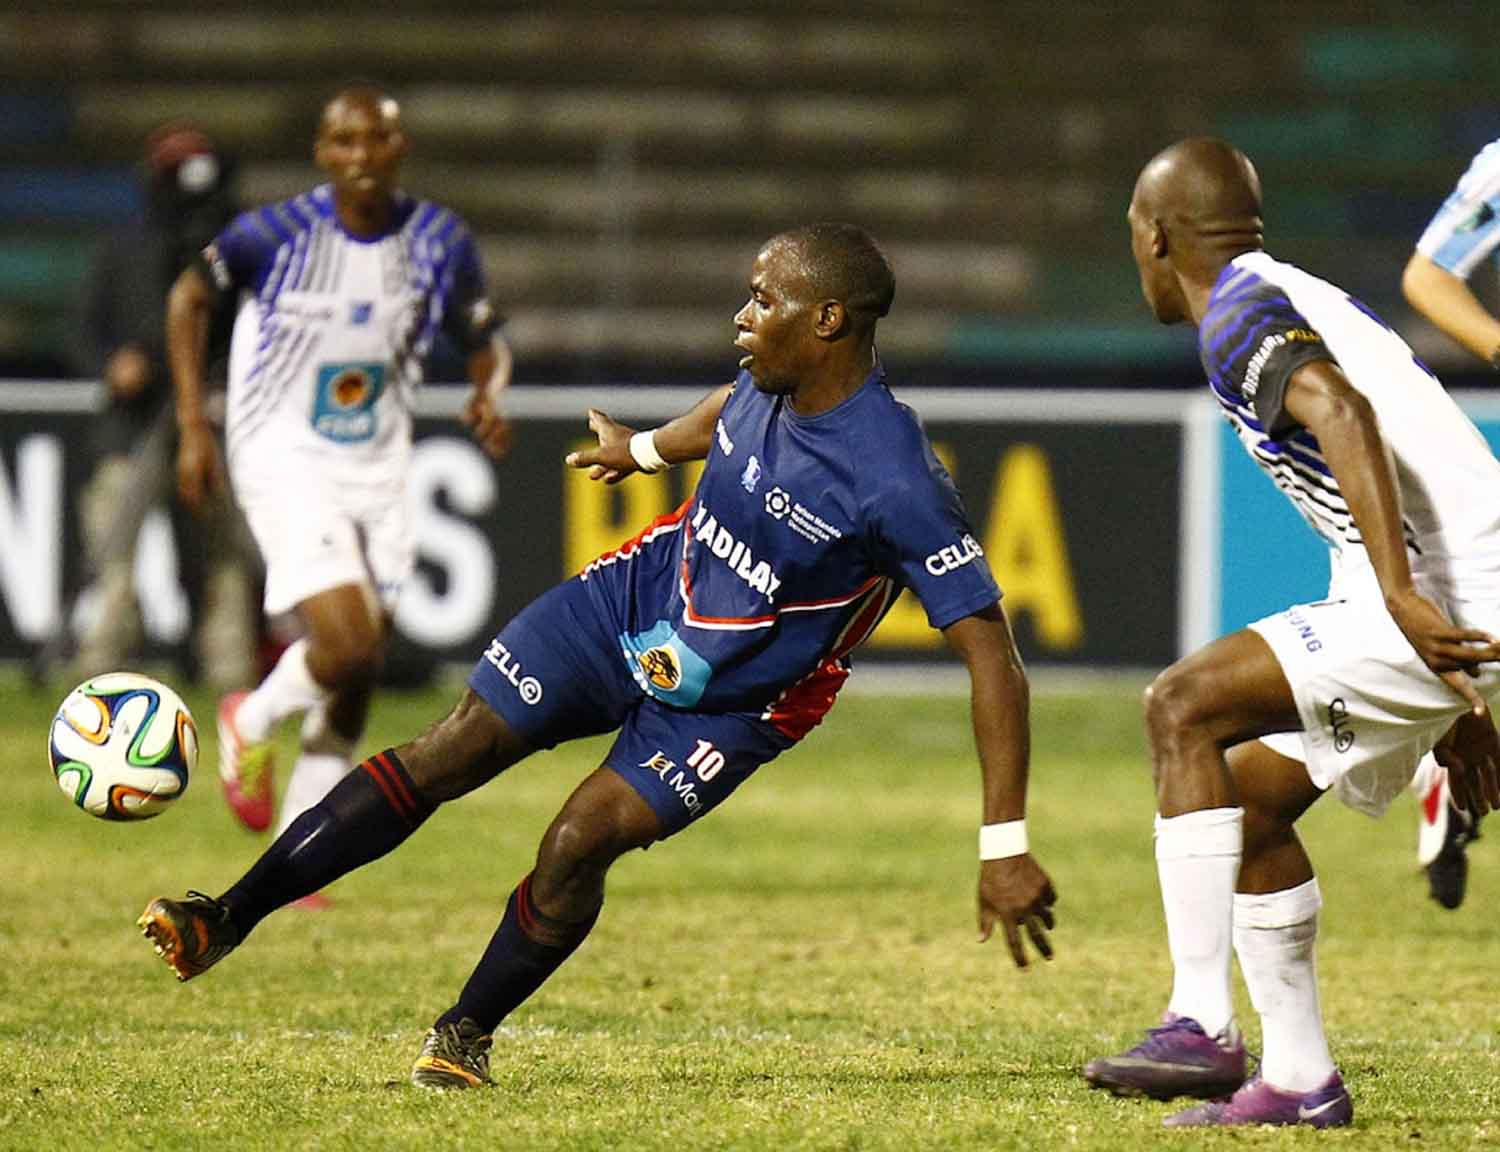 Madibaz Football Sportsman of the Year Claudius Sagandira played an important role in the team's success in 2015, leading to them winning the Pefa league title for a second consecutive year. Photo: Saspa